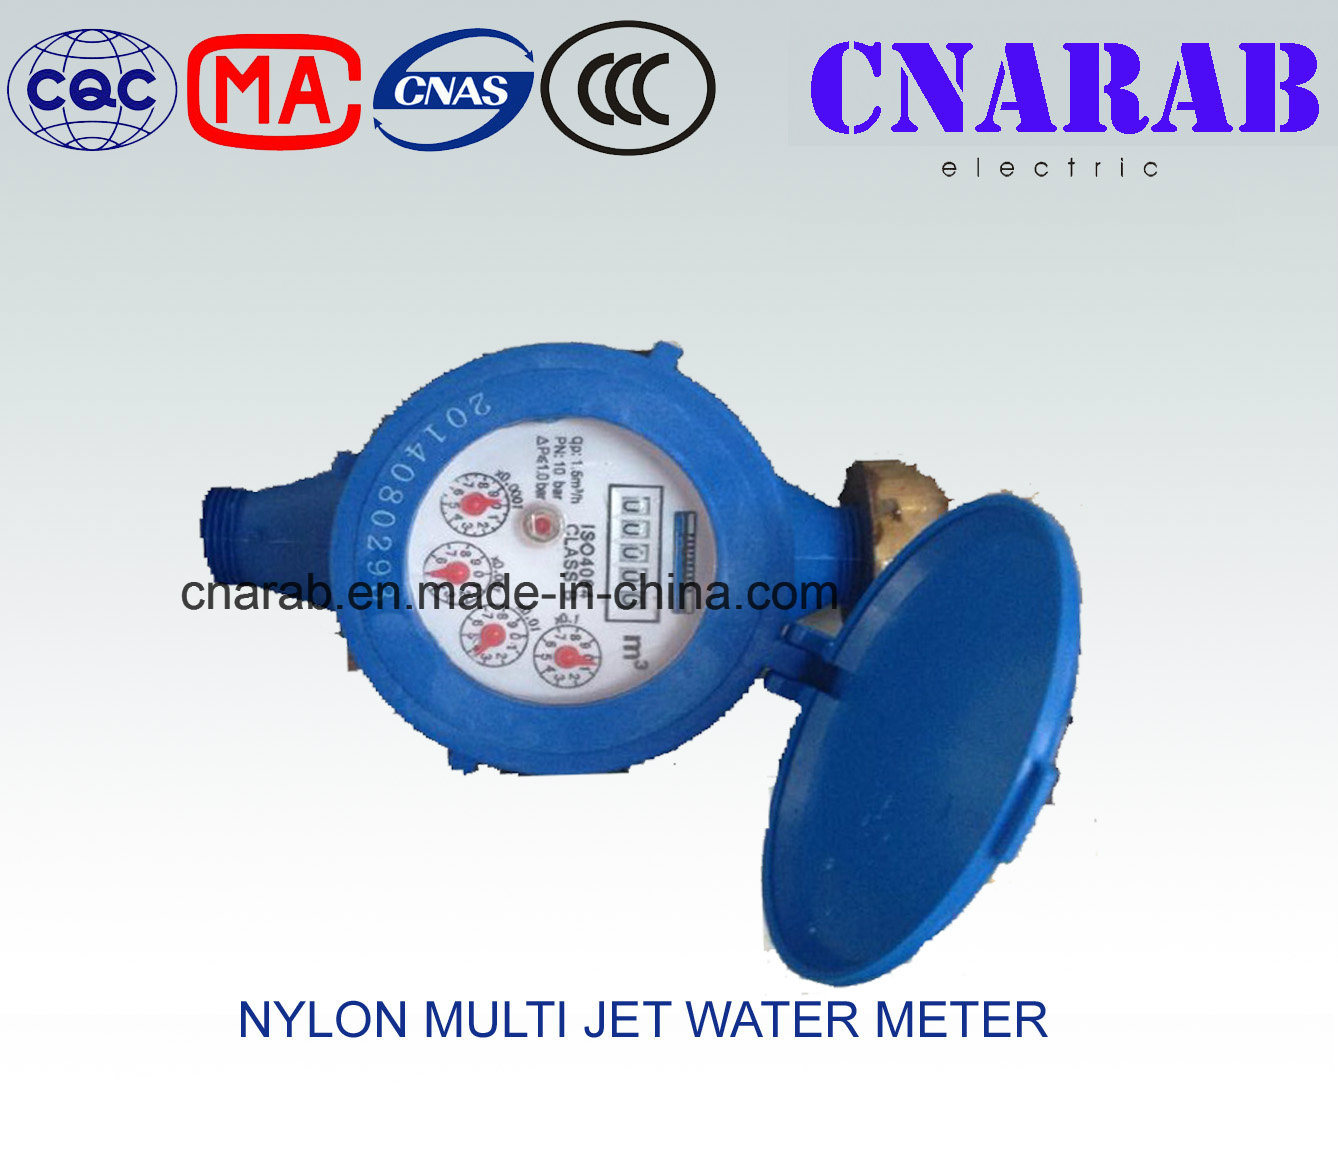 Nylon Multi Jet Water Meter Lxsg-15